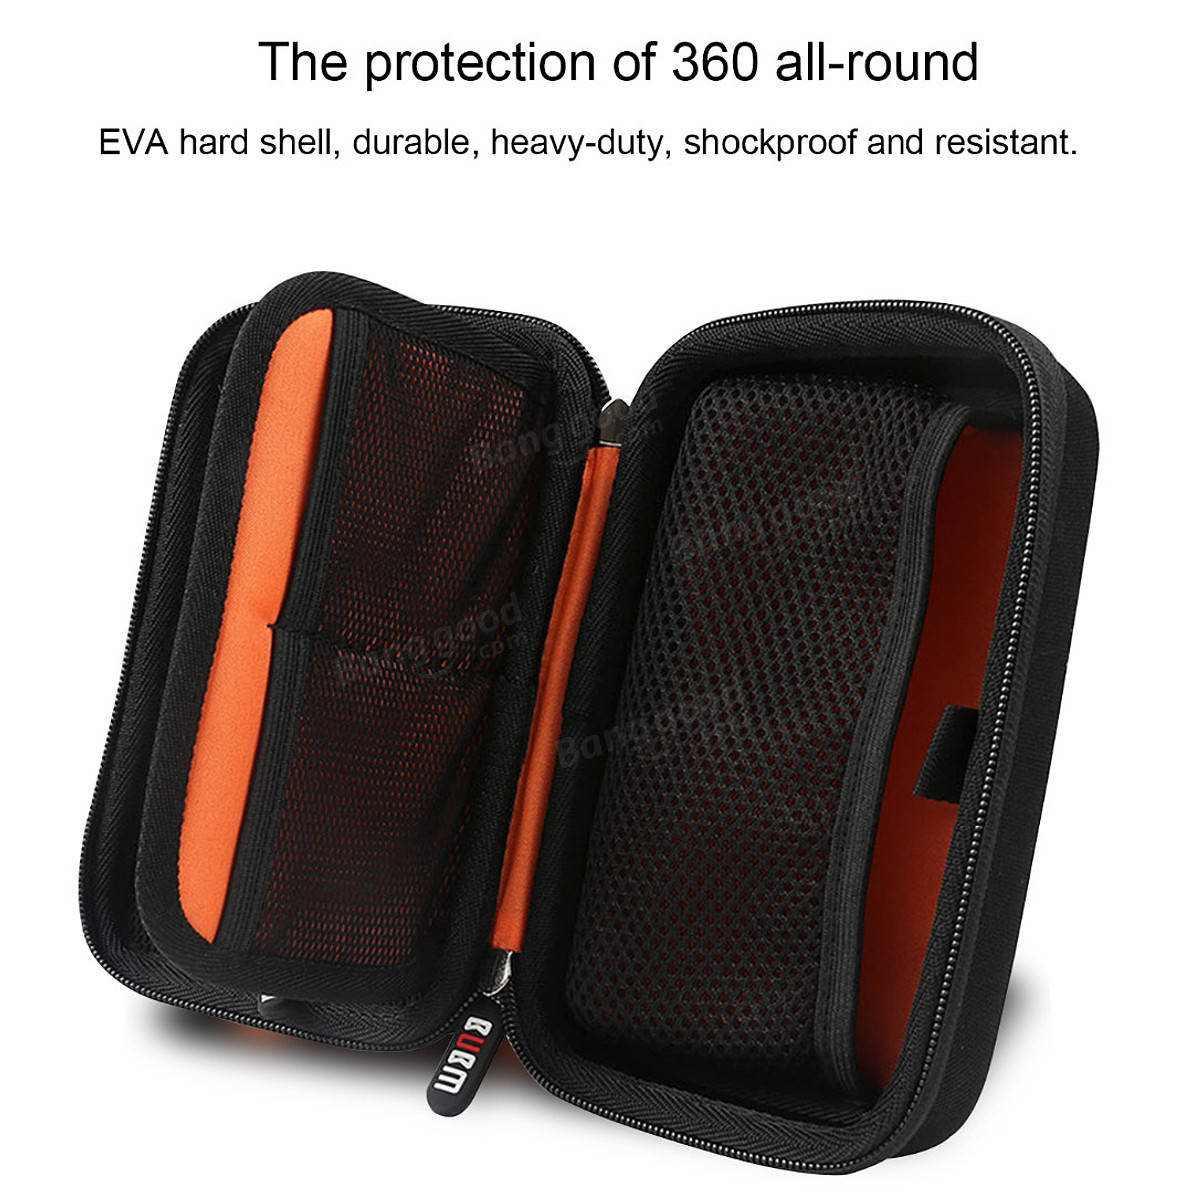 BUBM EVA Portable Carry Bag Storage Box Case for 2DSLL 3DSLL/XL Host Accessories